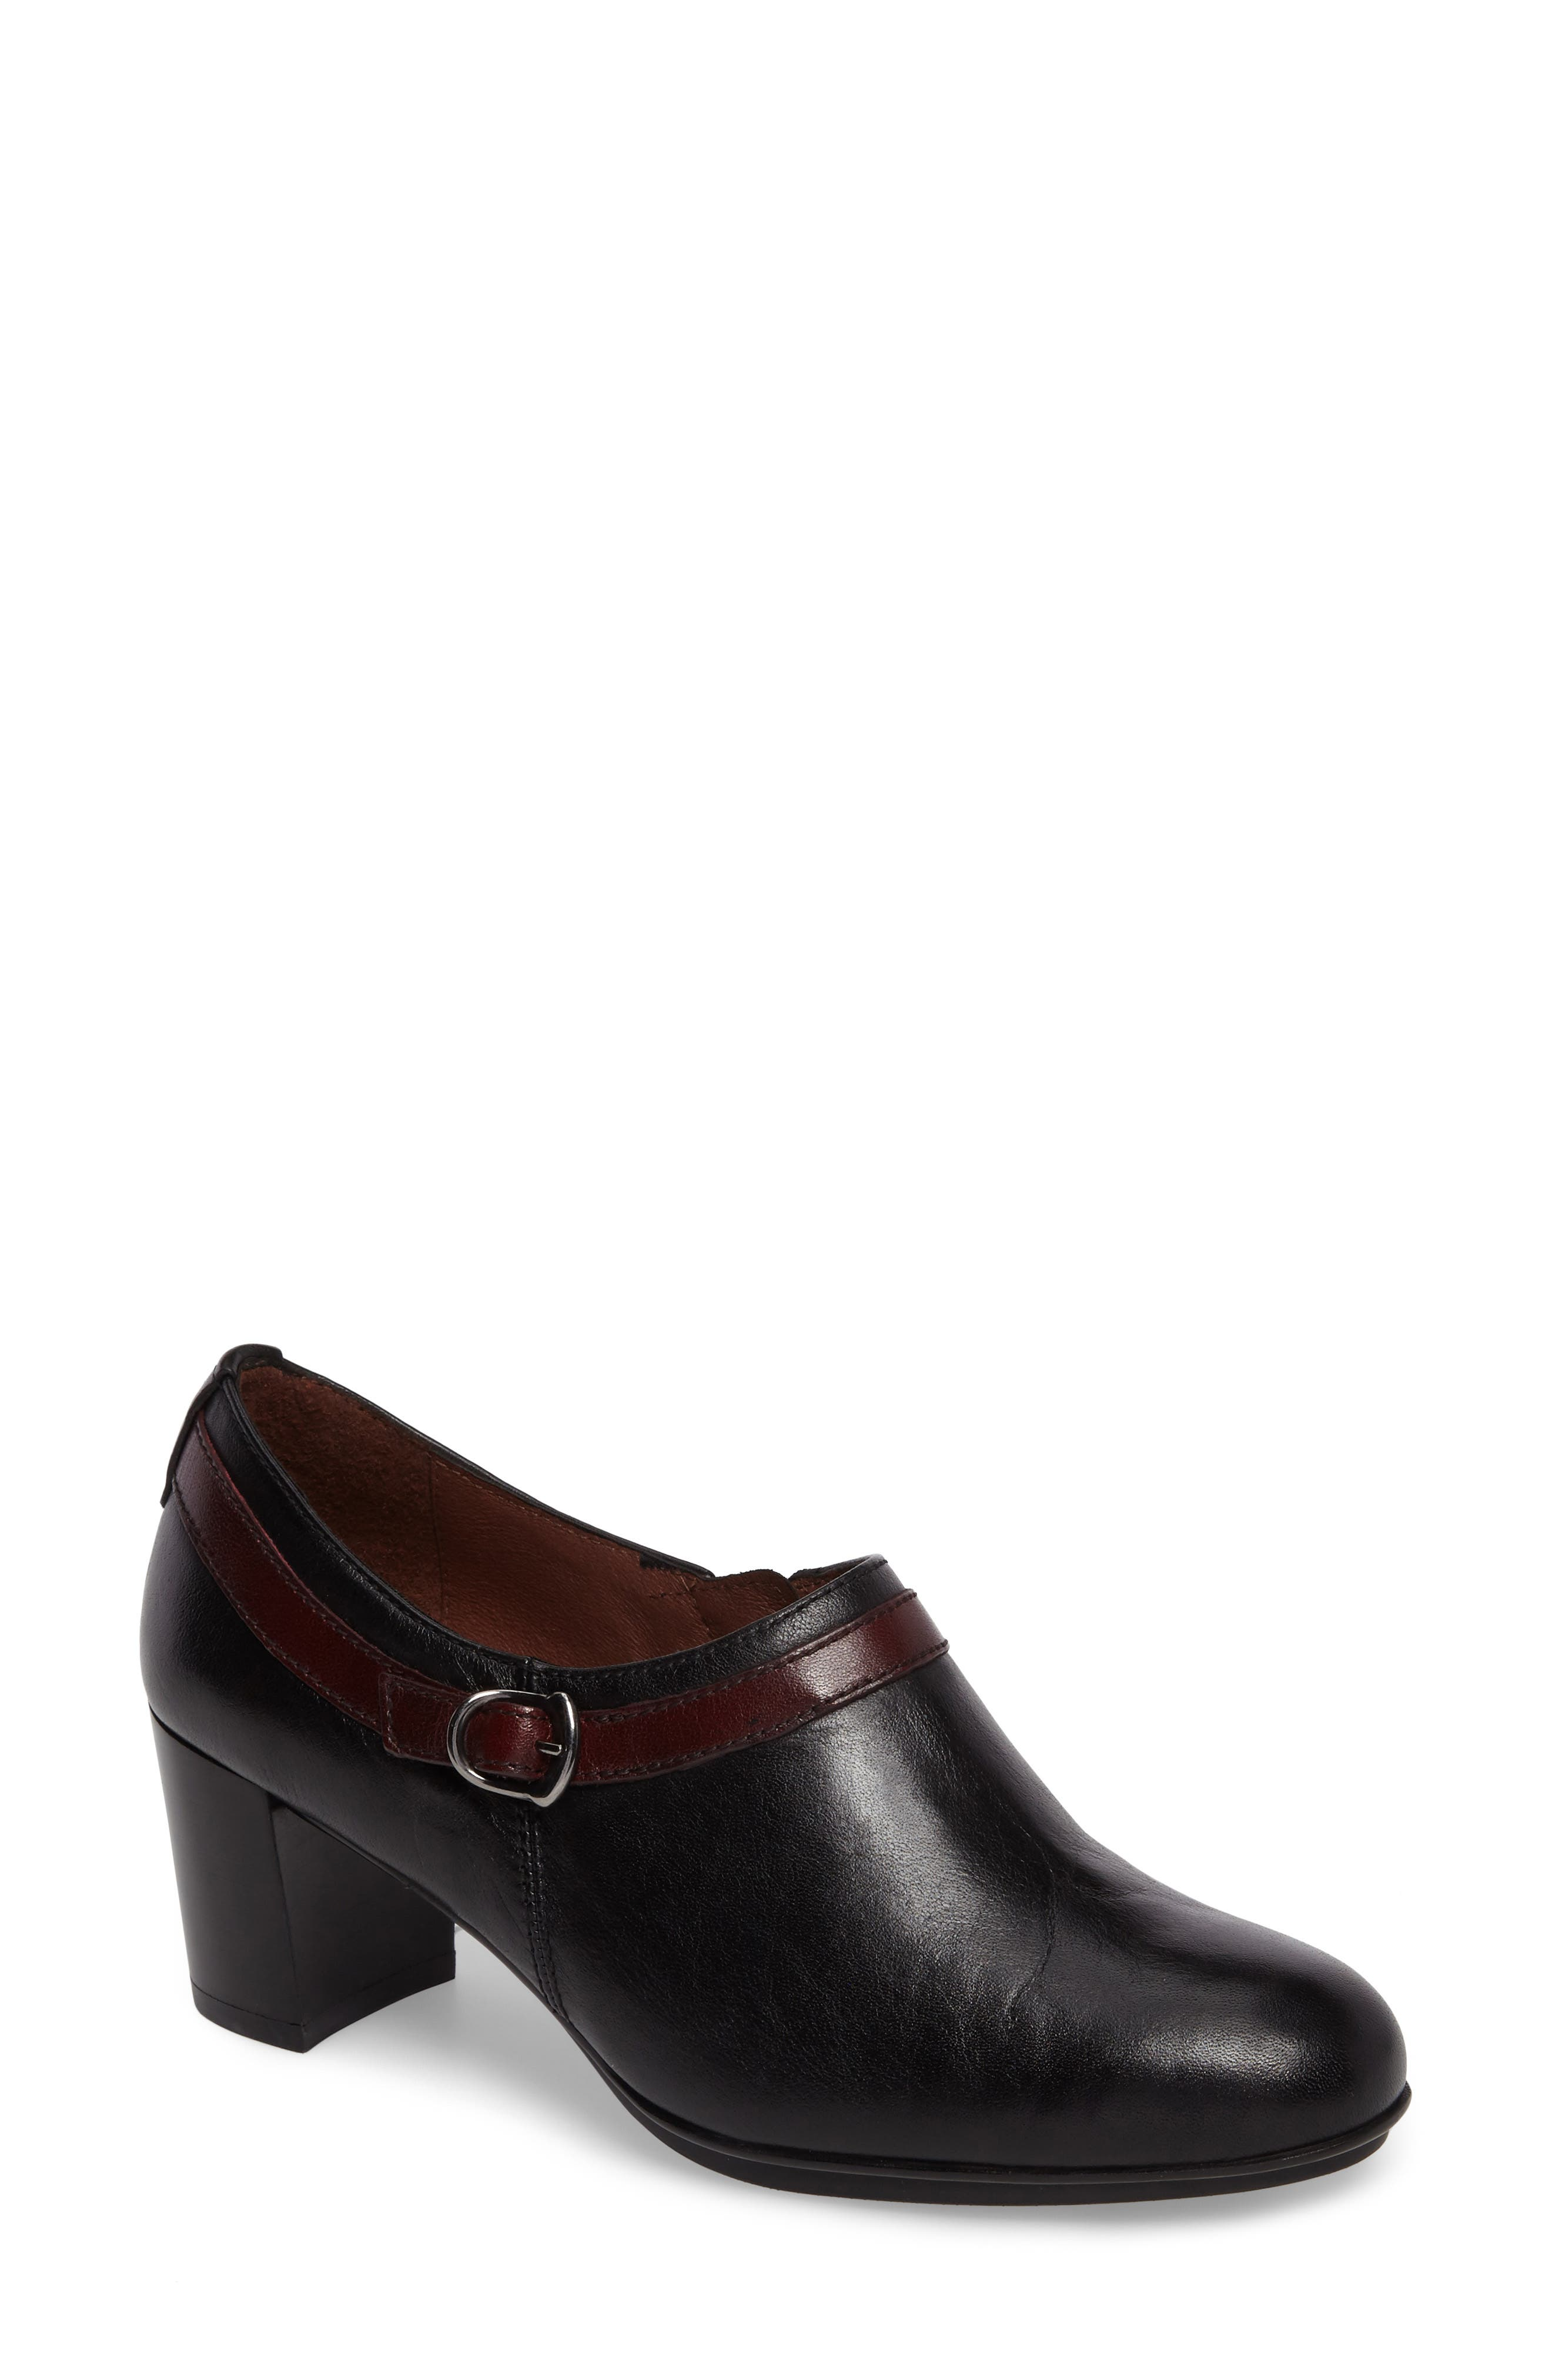 Shelley Bootie,                         Main,                         color, BLACK LEATHER